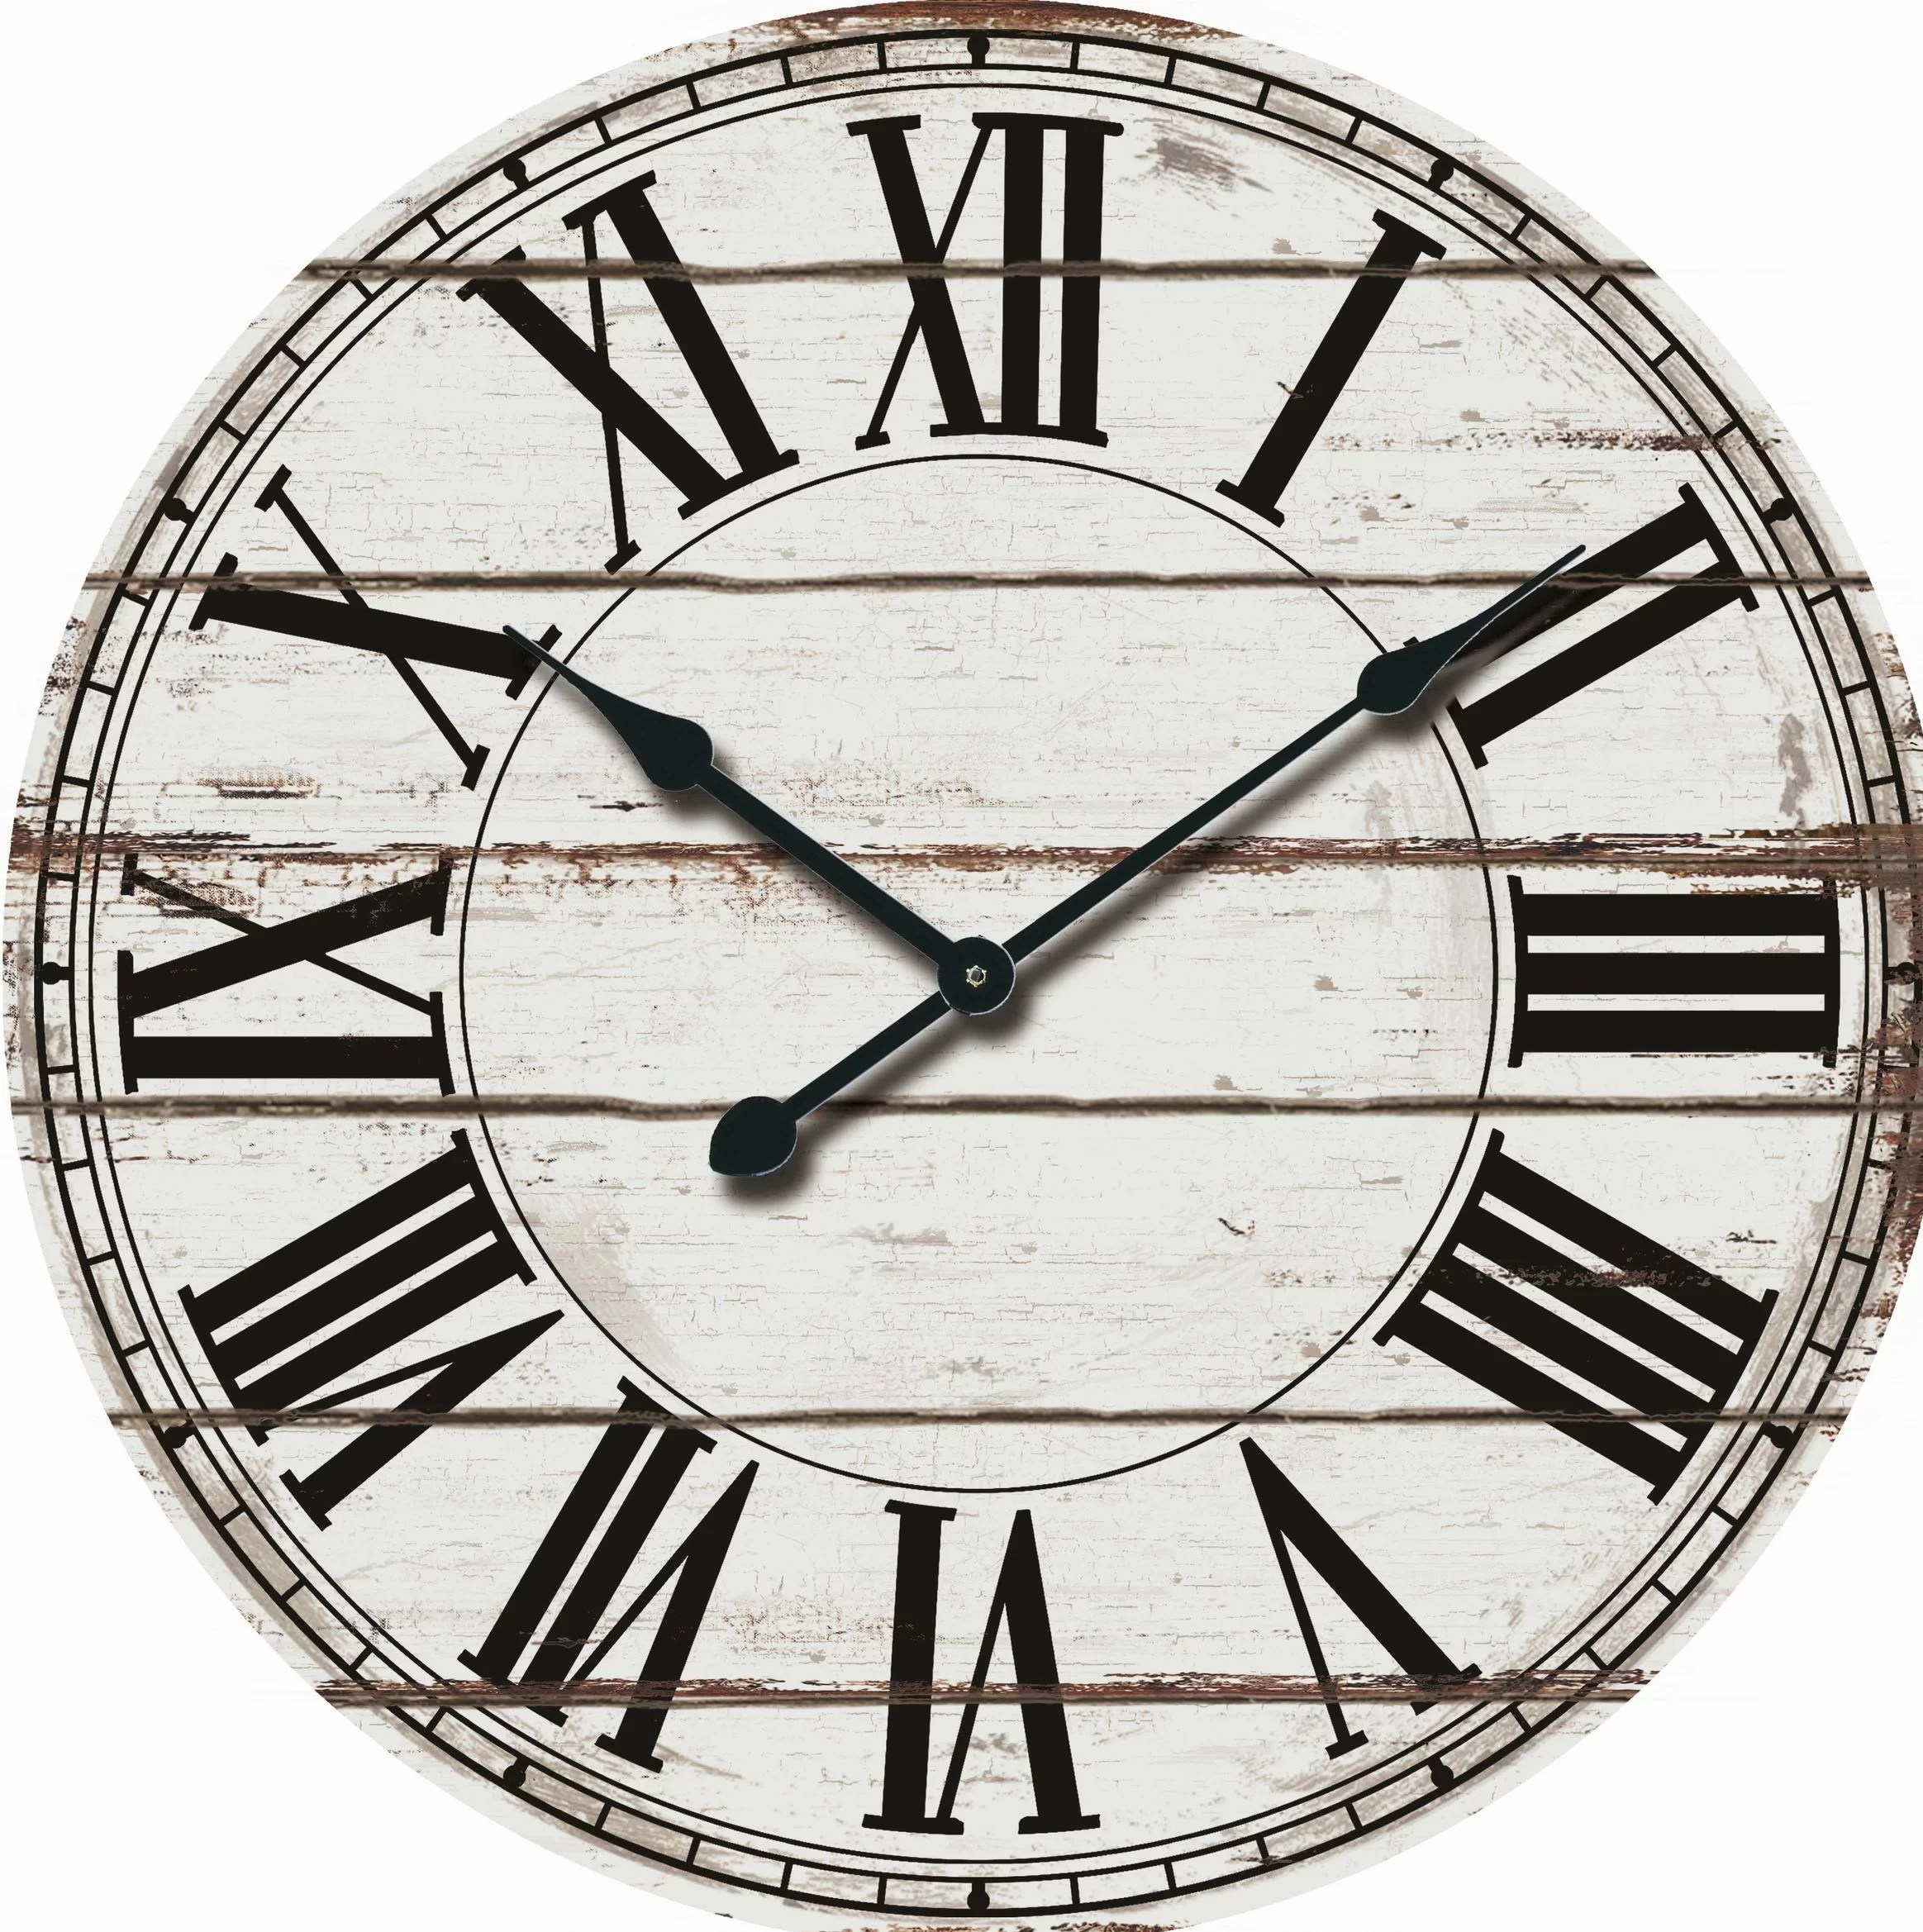 & Wall Clock Oversized Rustic Wood 24